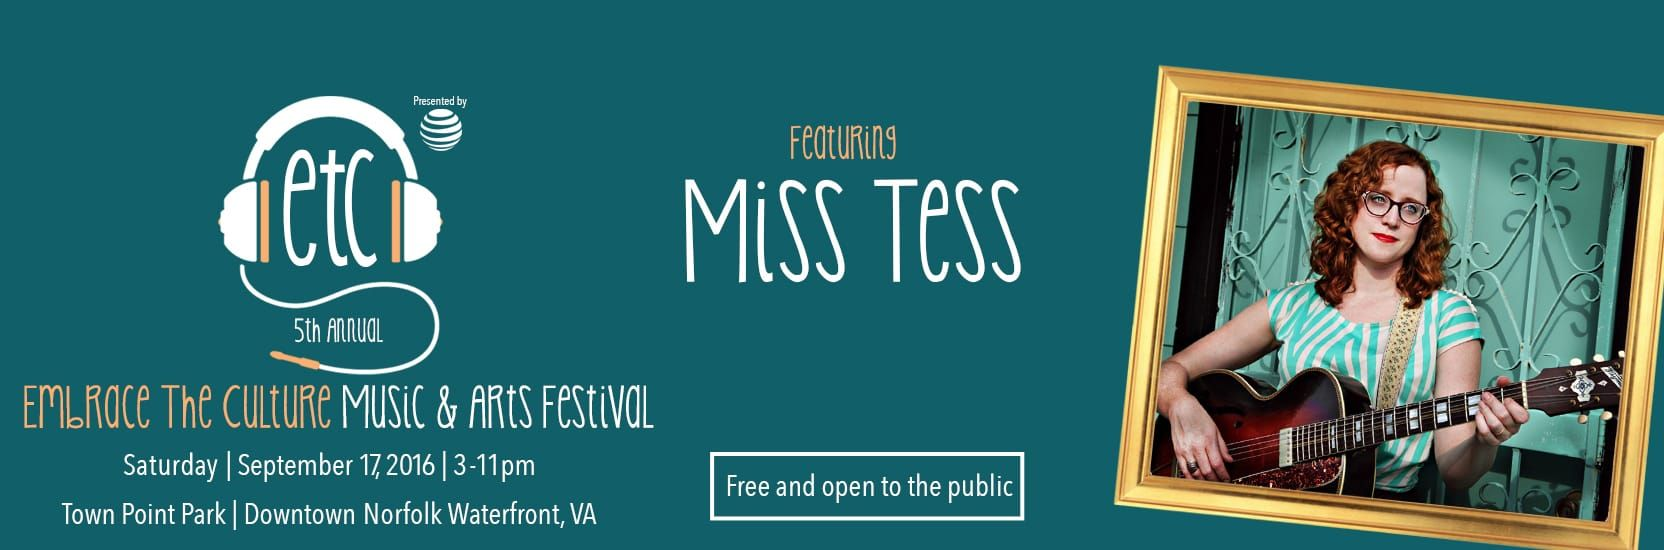 WebsiteHeader Miss Tess.jpg